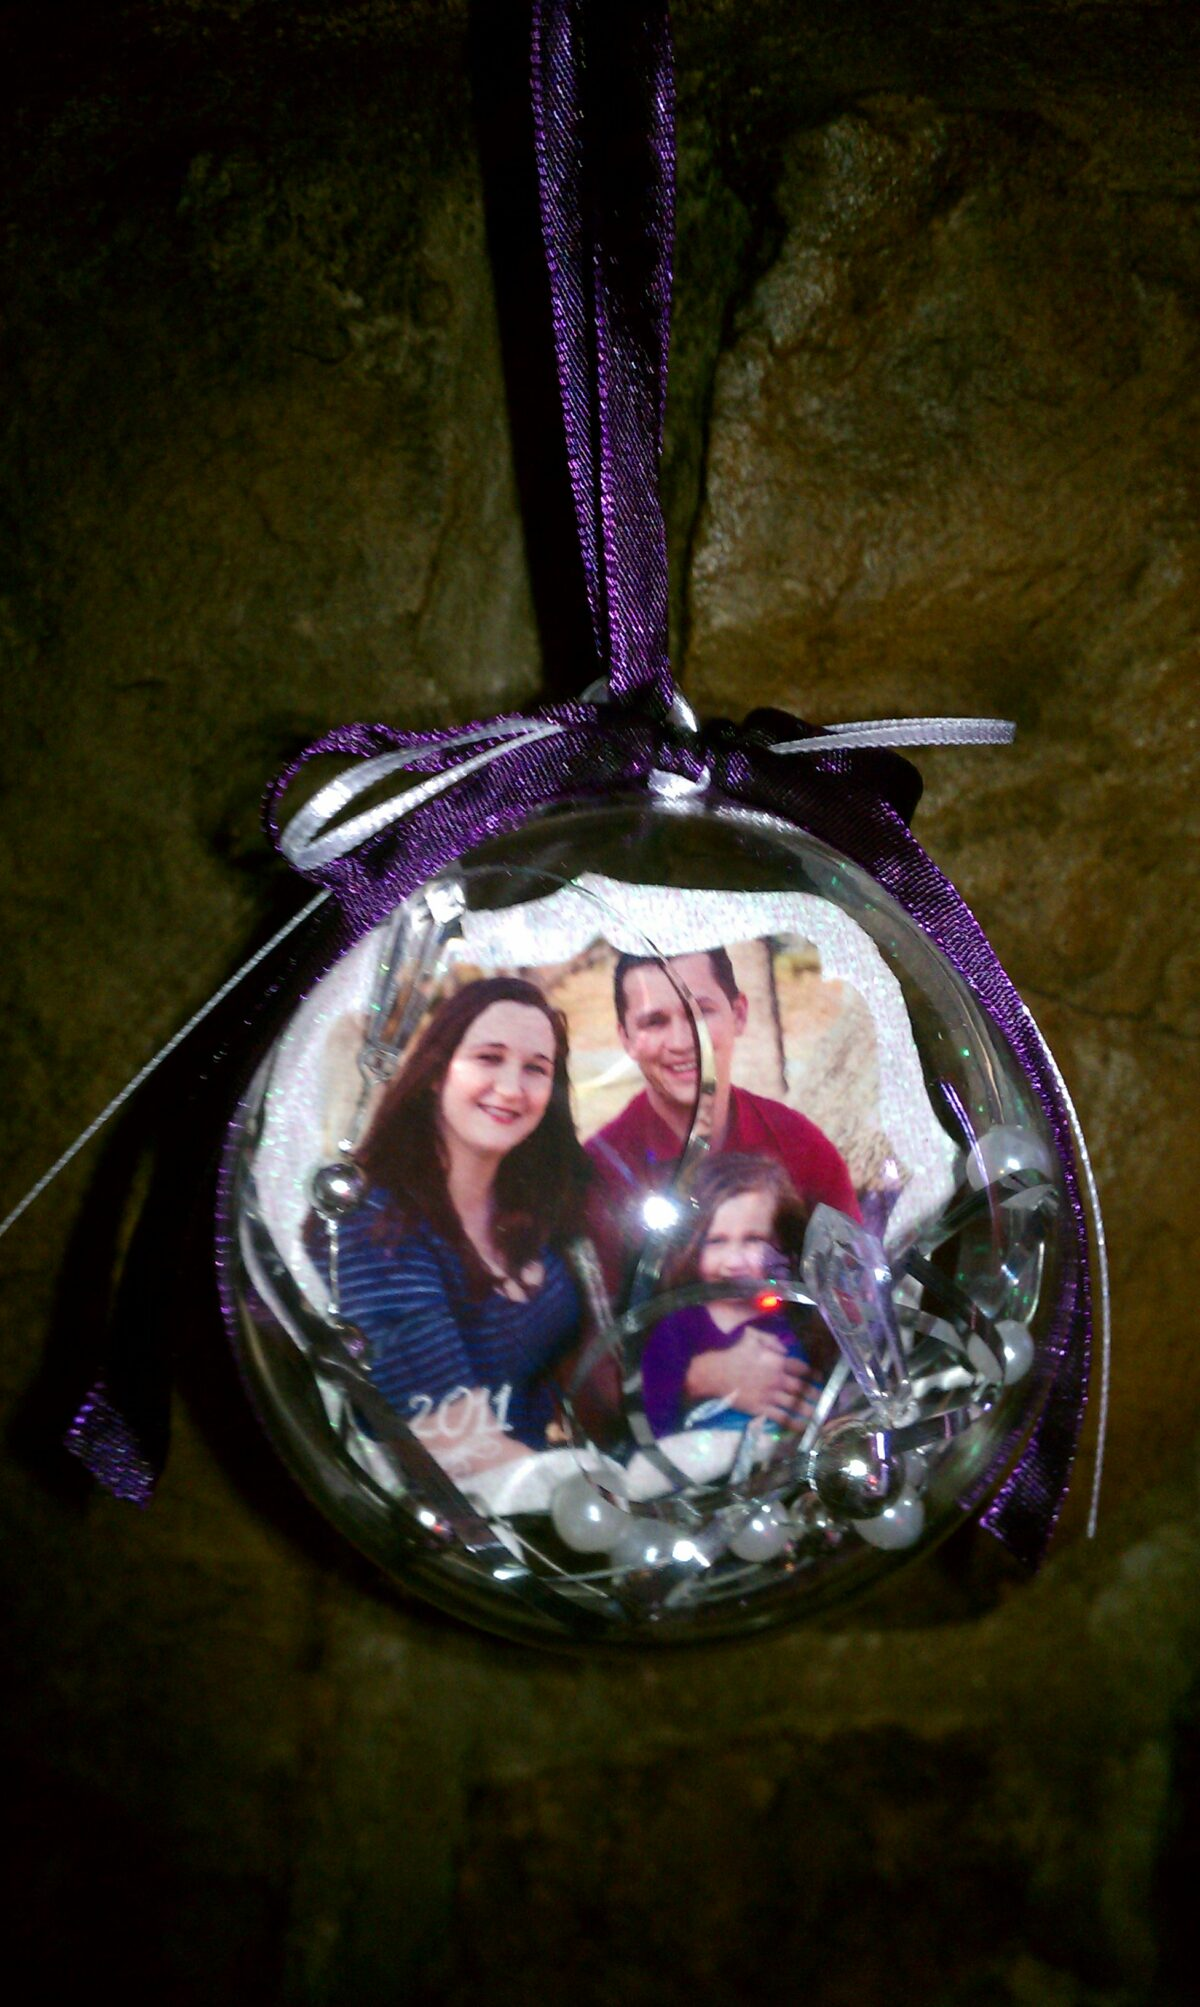 Diy Family Photo Display Click On Image To See More Home: DIY Family Christmas Ornaments